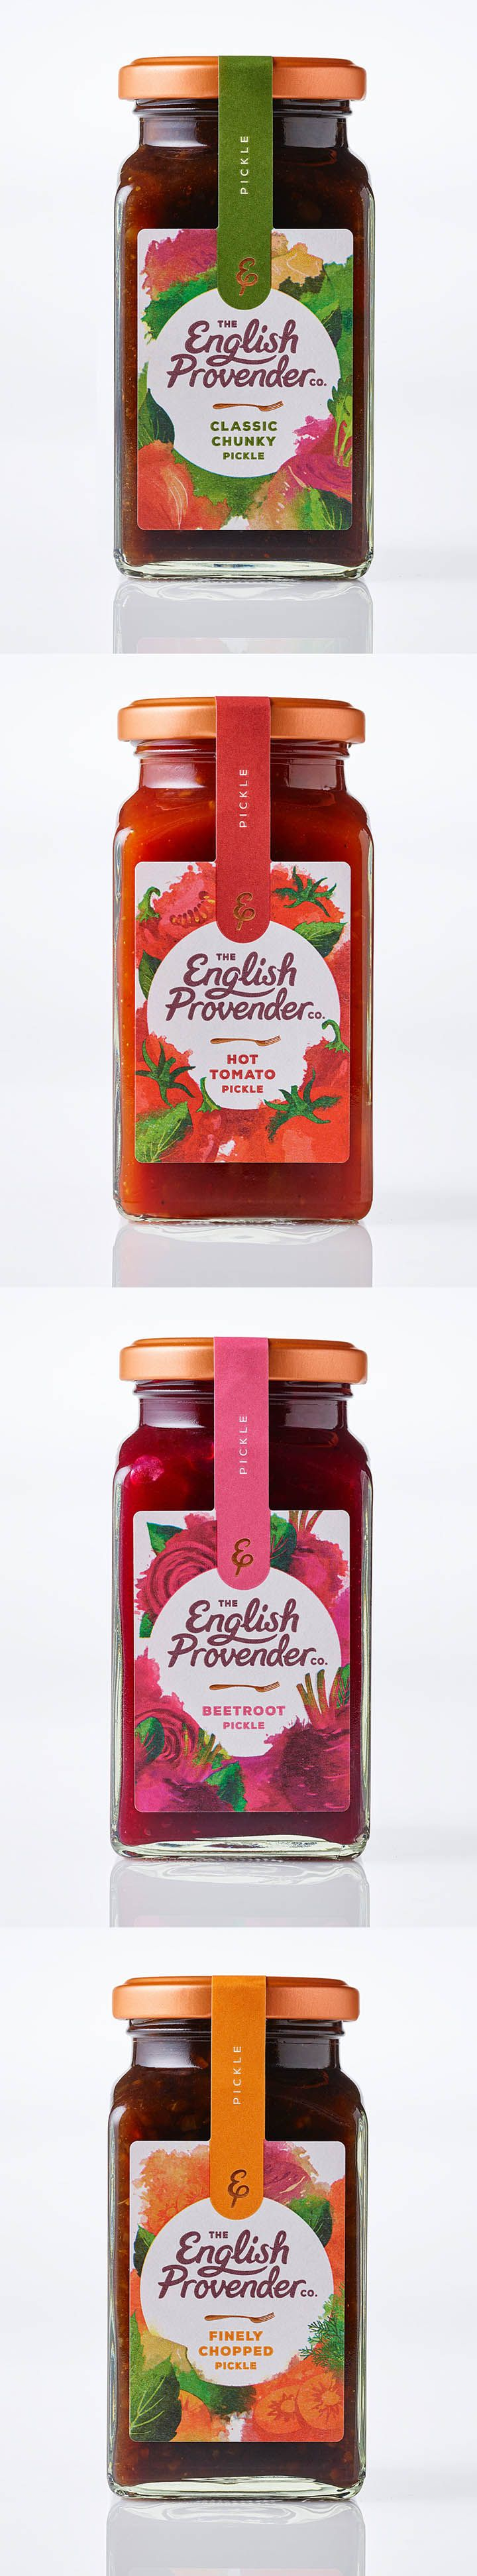 New range of pickles and chutneys launched by English Provender. A range of 6 chutneys and 4 pickles stocked in all UK supermarkets. Illustrations by Ohn Mar Win